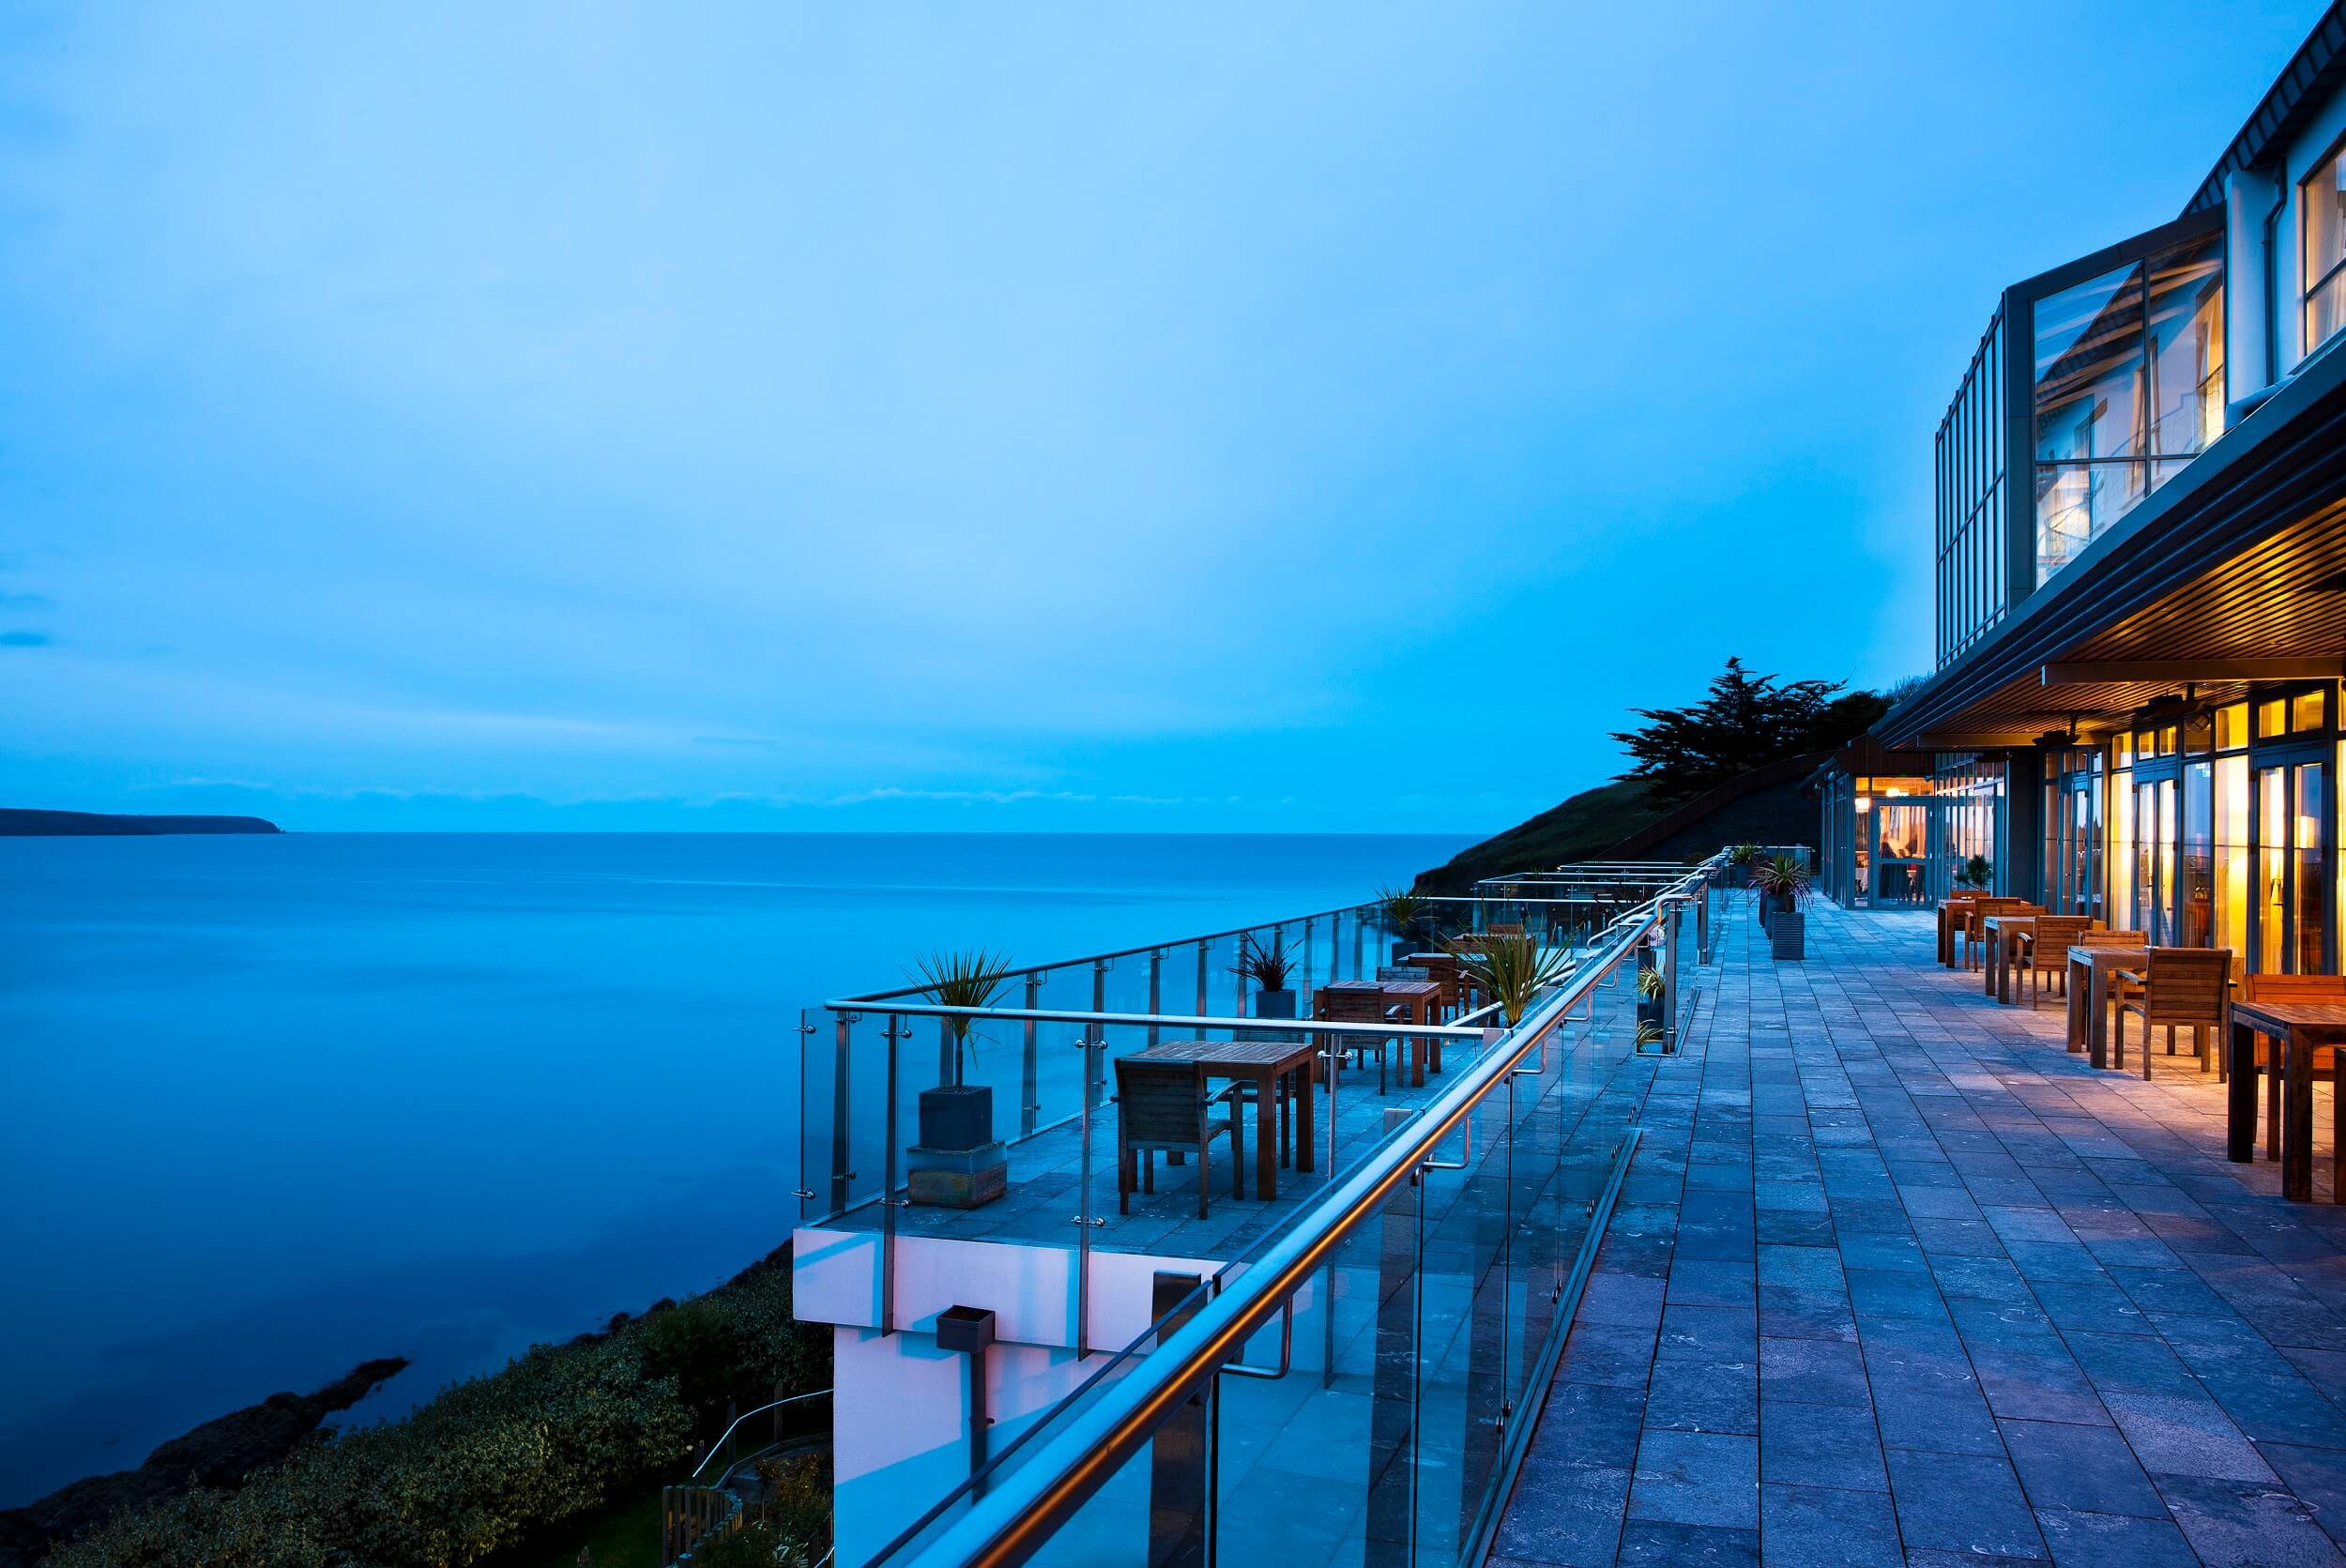 PHOTOS BY: Cliff House Hotel